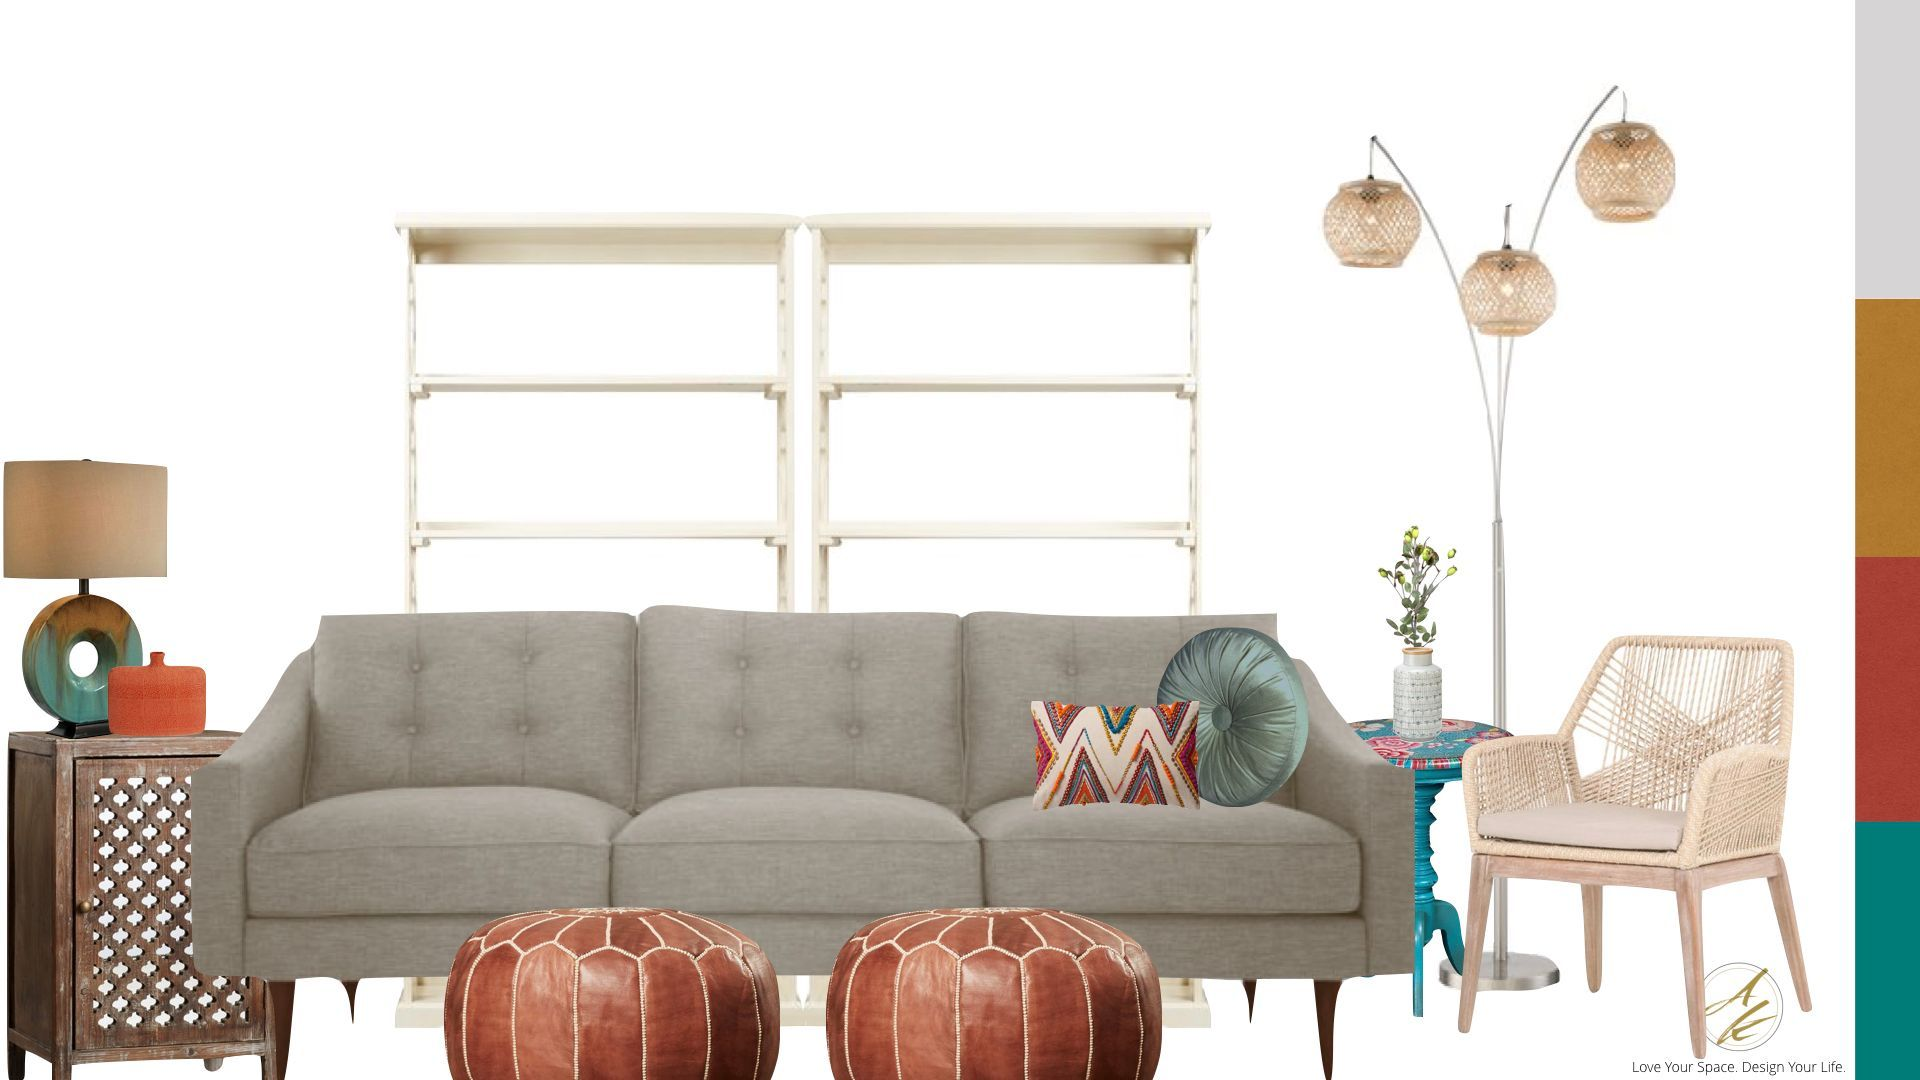 Whatu0027s Your Interior Design Style? Could You Be Boho Eclectic? Take The  Albie Knows